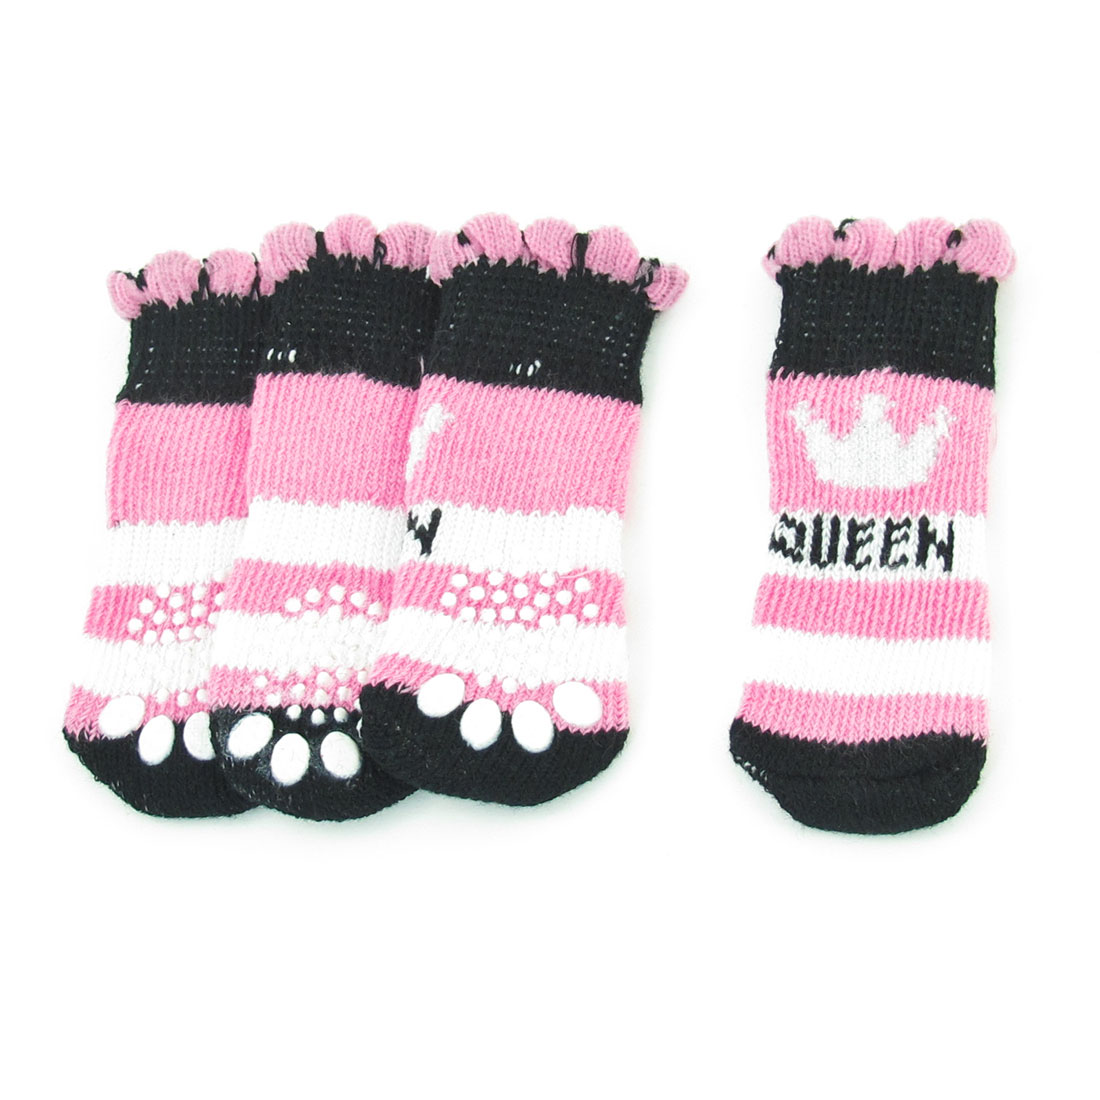 2 Pairs Dog Pet Stretch Acrylic Ribbed Knitted Pink Black Nonslip Socks M